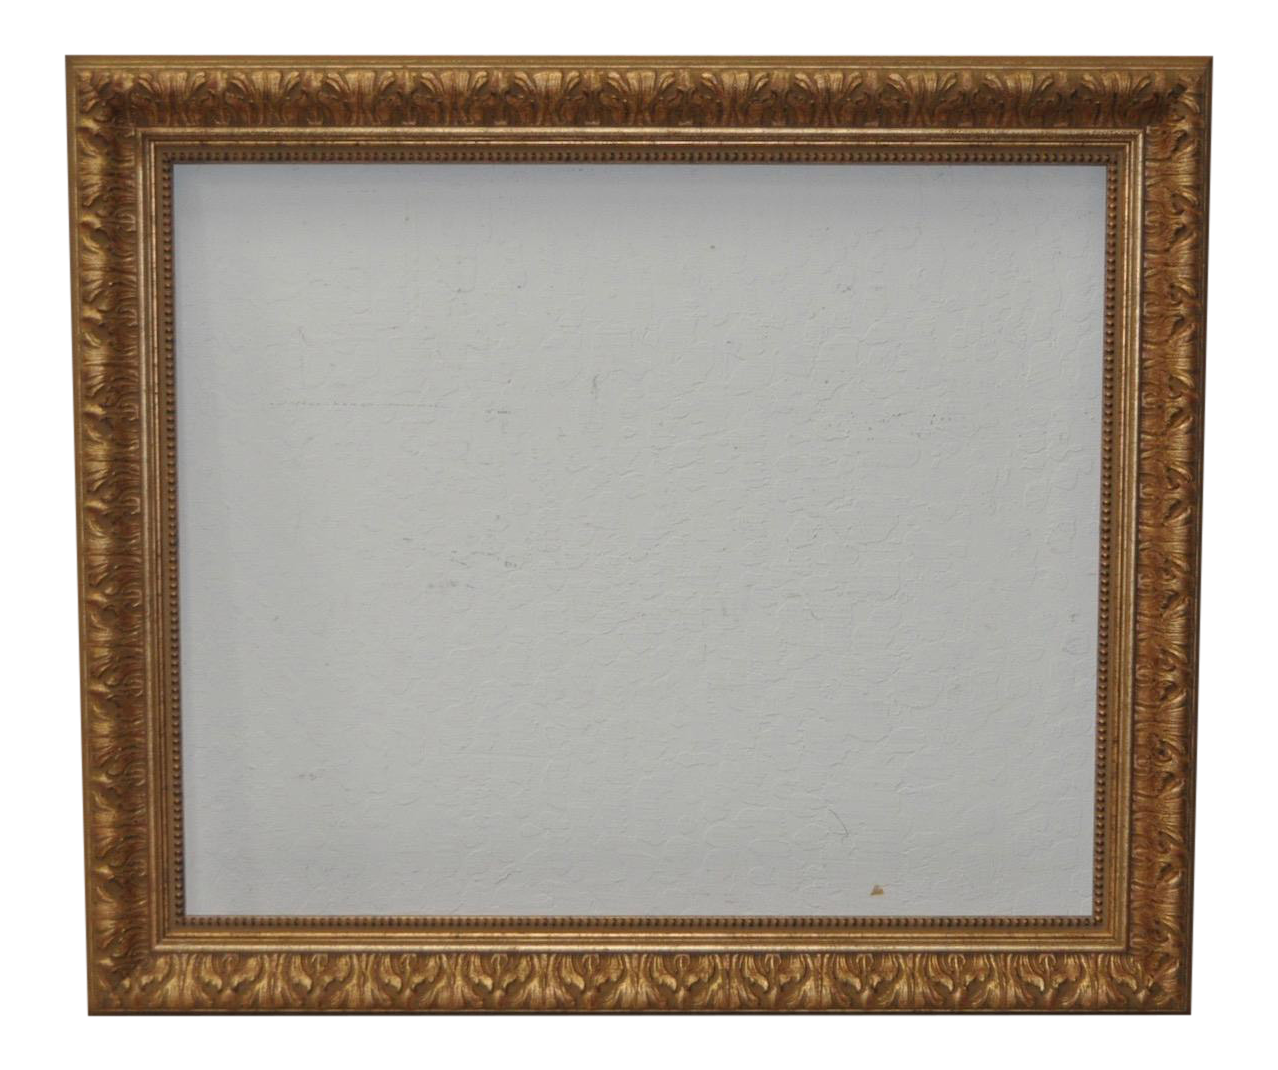 Vintage carved gilded italian frame c1940s to 1950s chairish jeuxipadfo Image collections